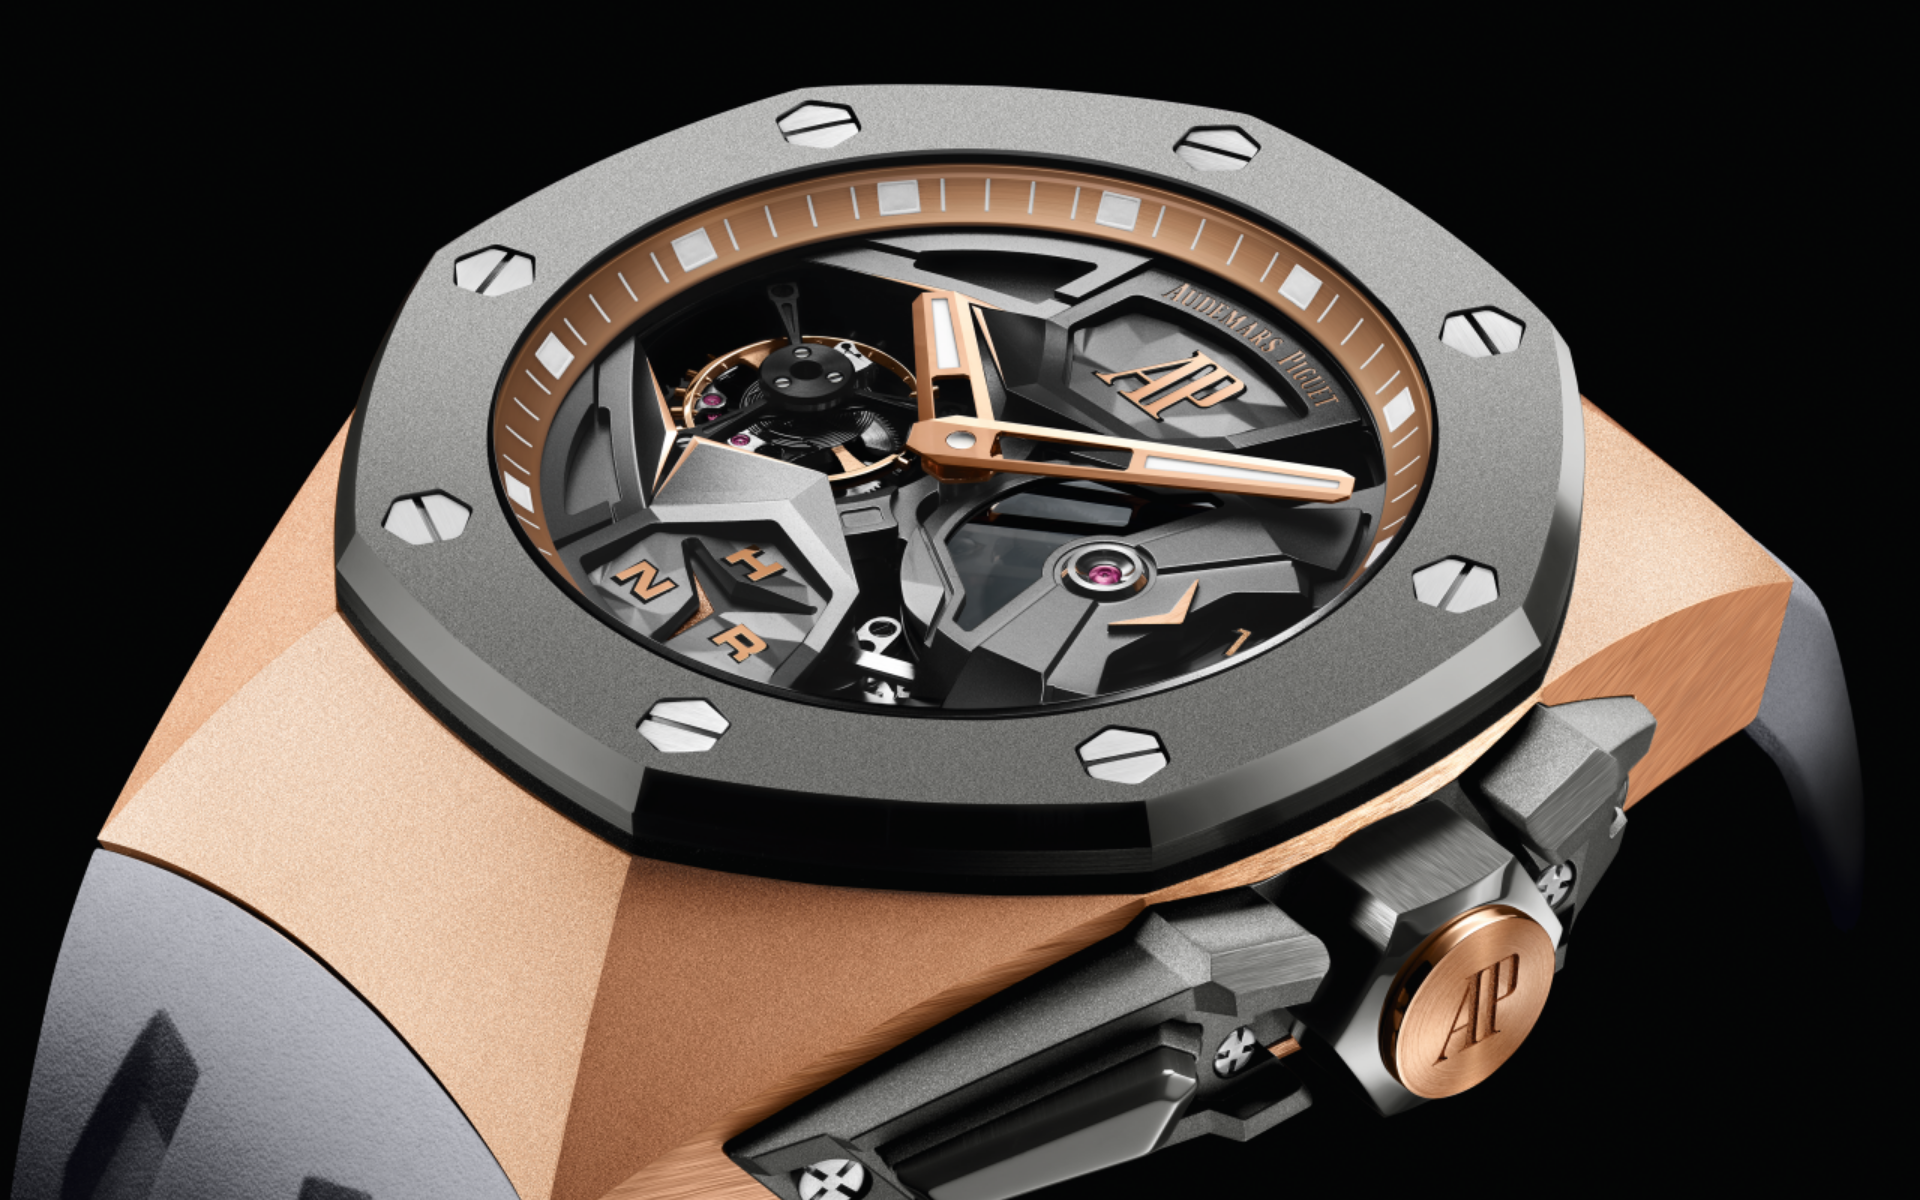 This Audemars Piguet Royal Oak Concept Flying Tourbillon GMT Is Exclusive To Southeast Asia